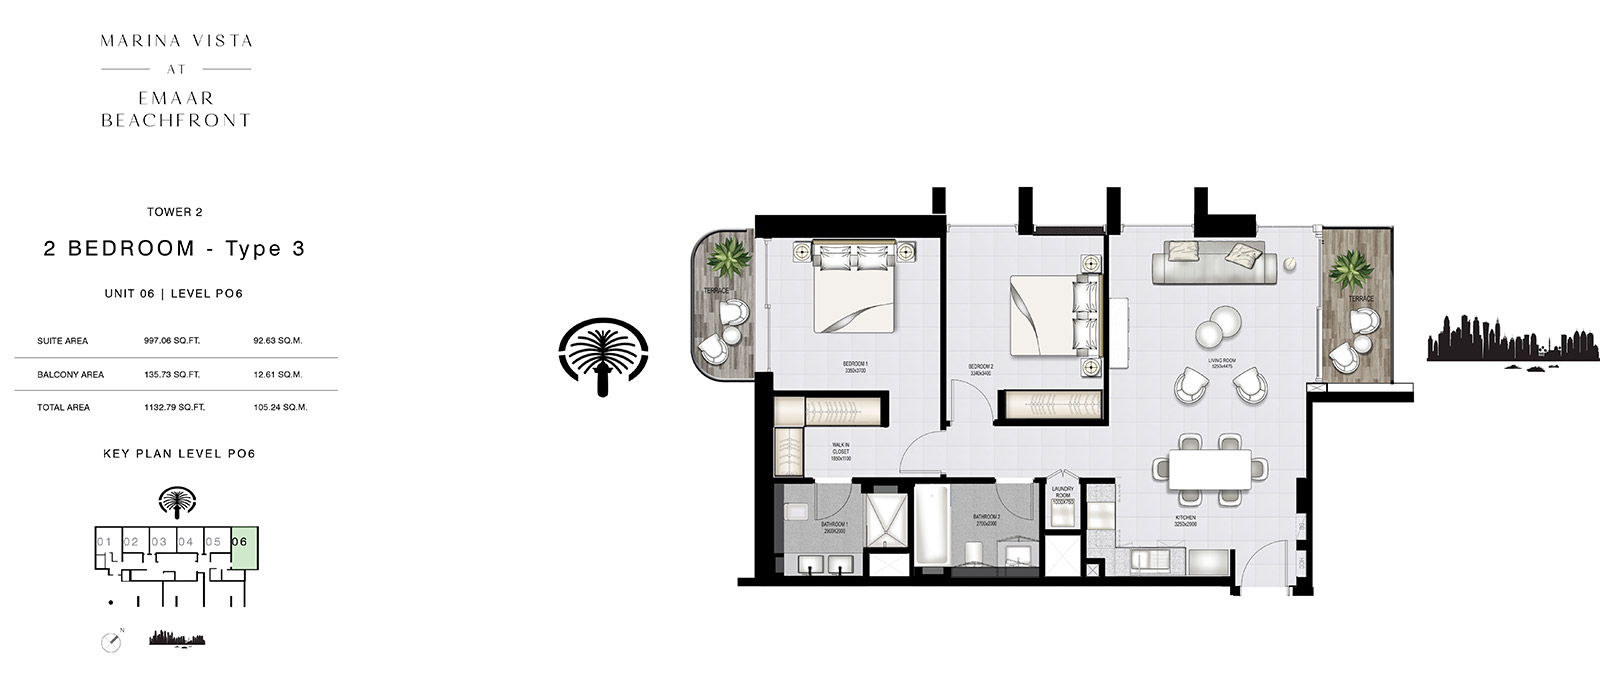 2 Bedroom Tower 2, Type 3, Size 1132.79 sq.ft.